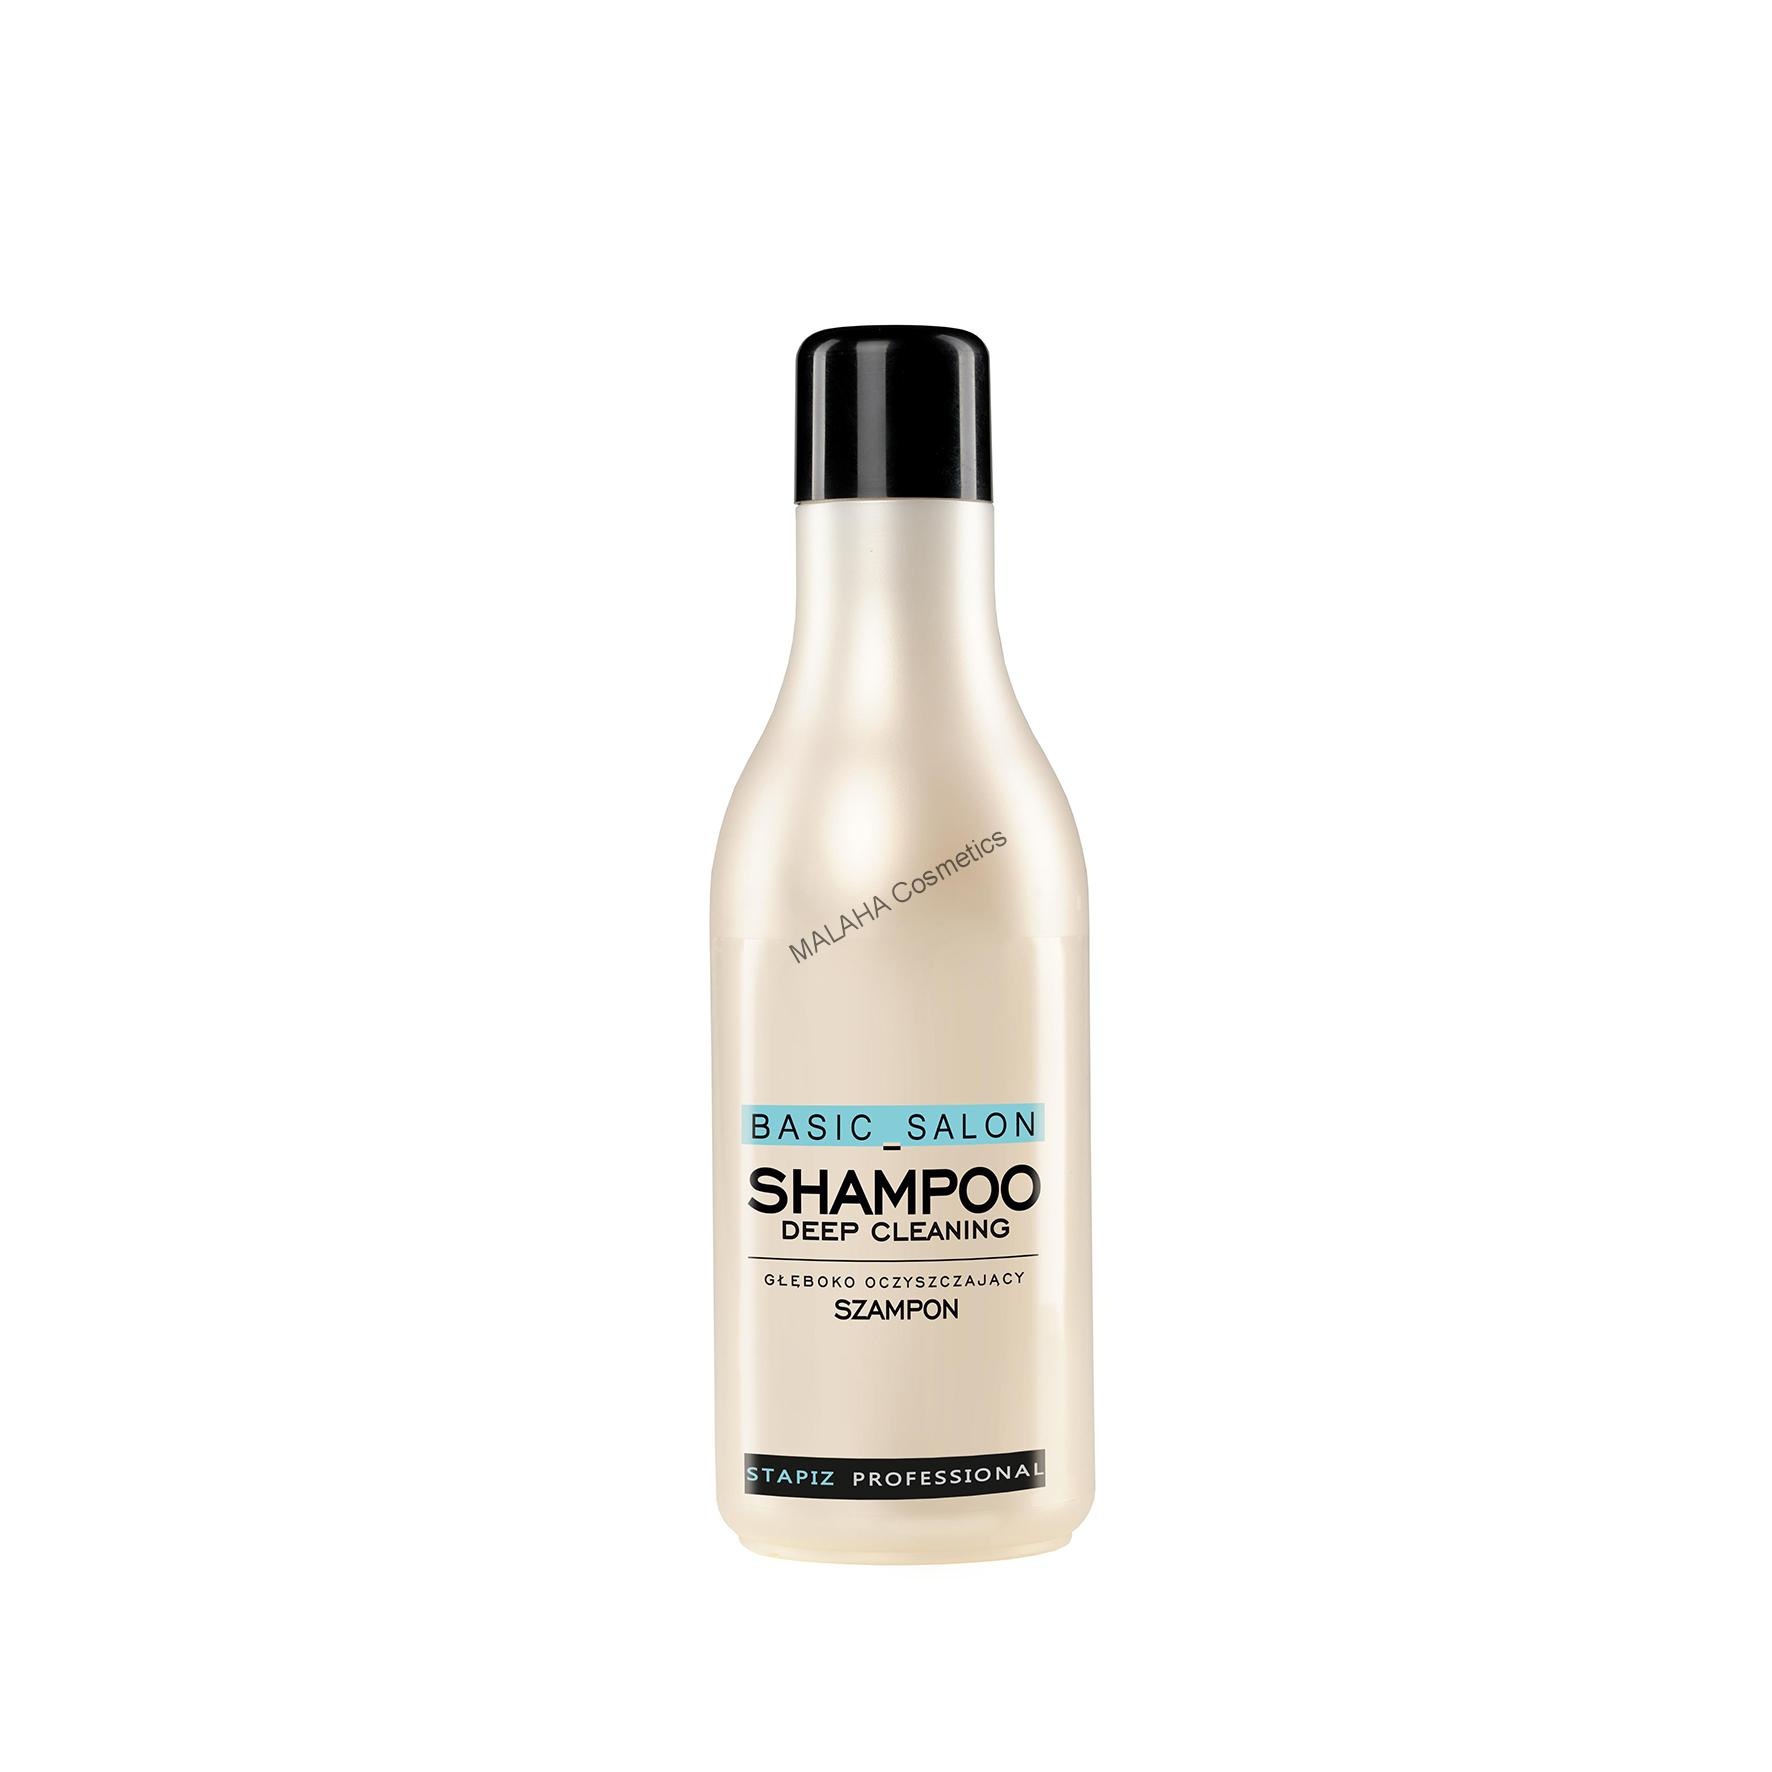 STAPIZ Cleansing shampoo 1000 ml